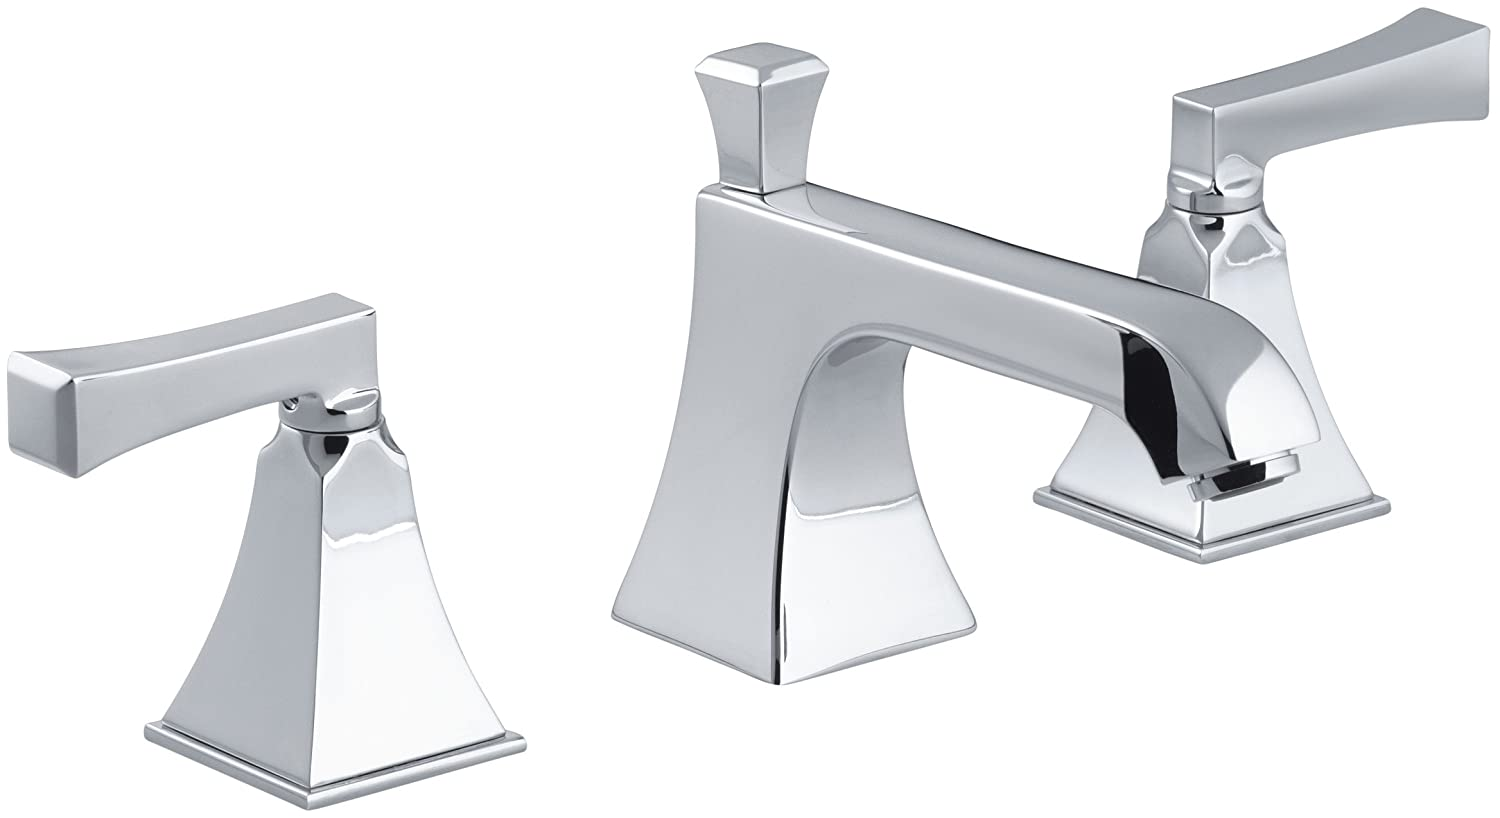 american handle bathroom sink arc inch lavatory faucets faucet standard studio widespread high